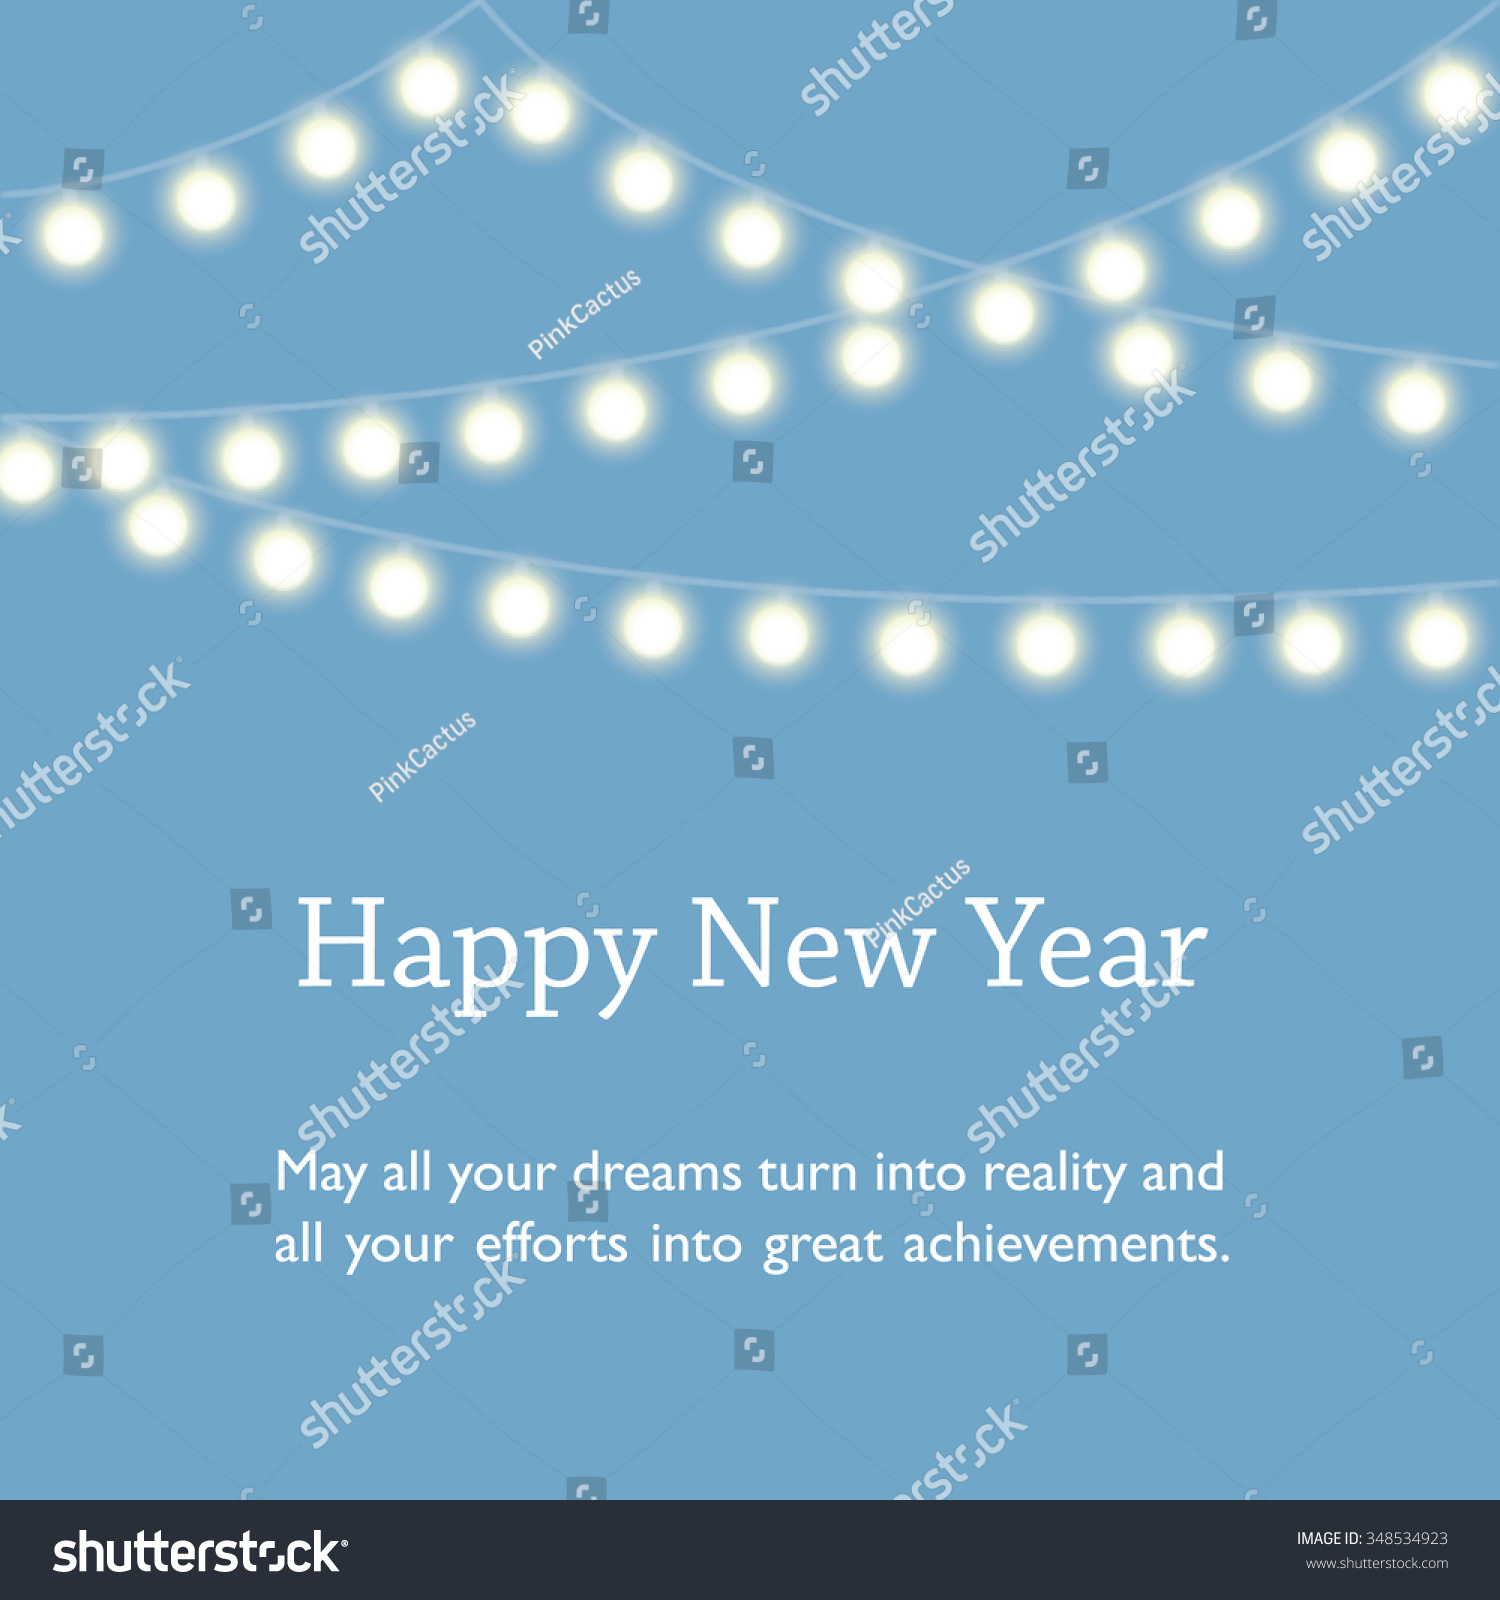 happy new year wishes on blue background with string of glowing fairy lights